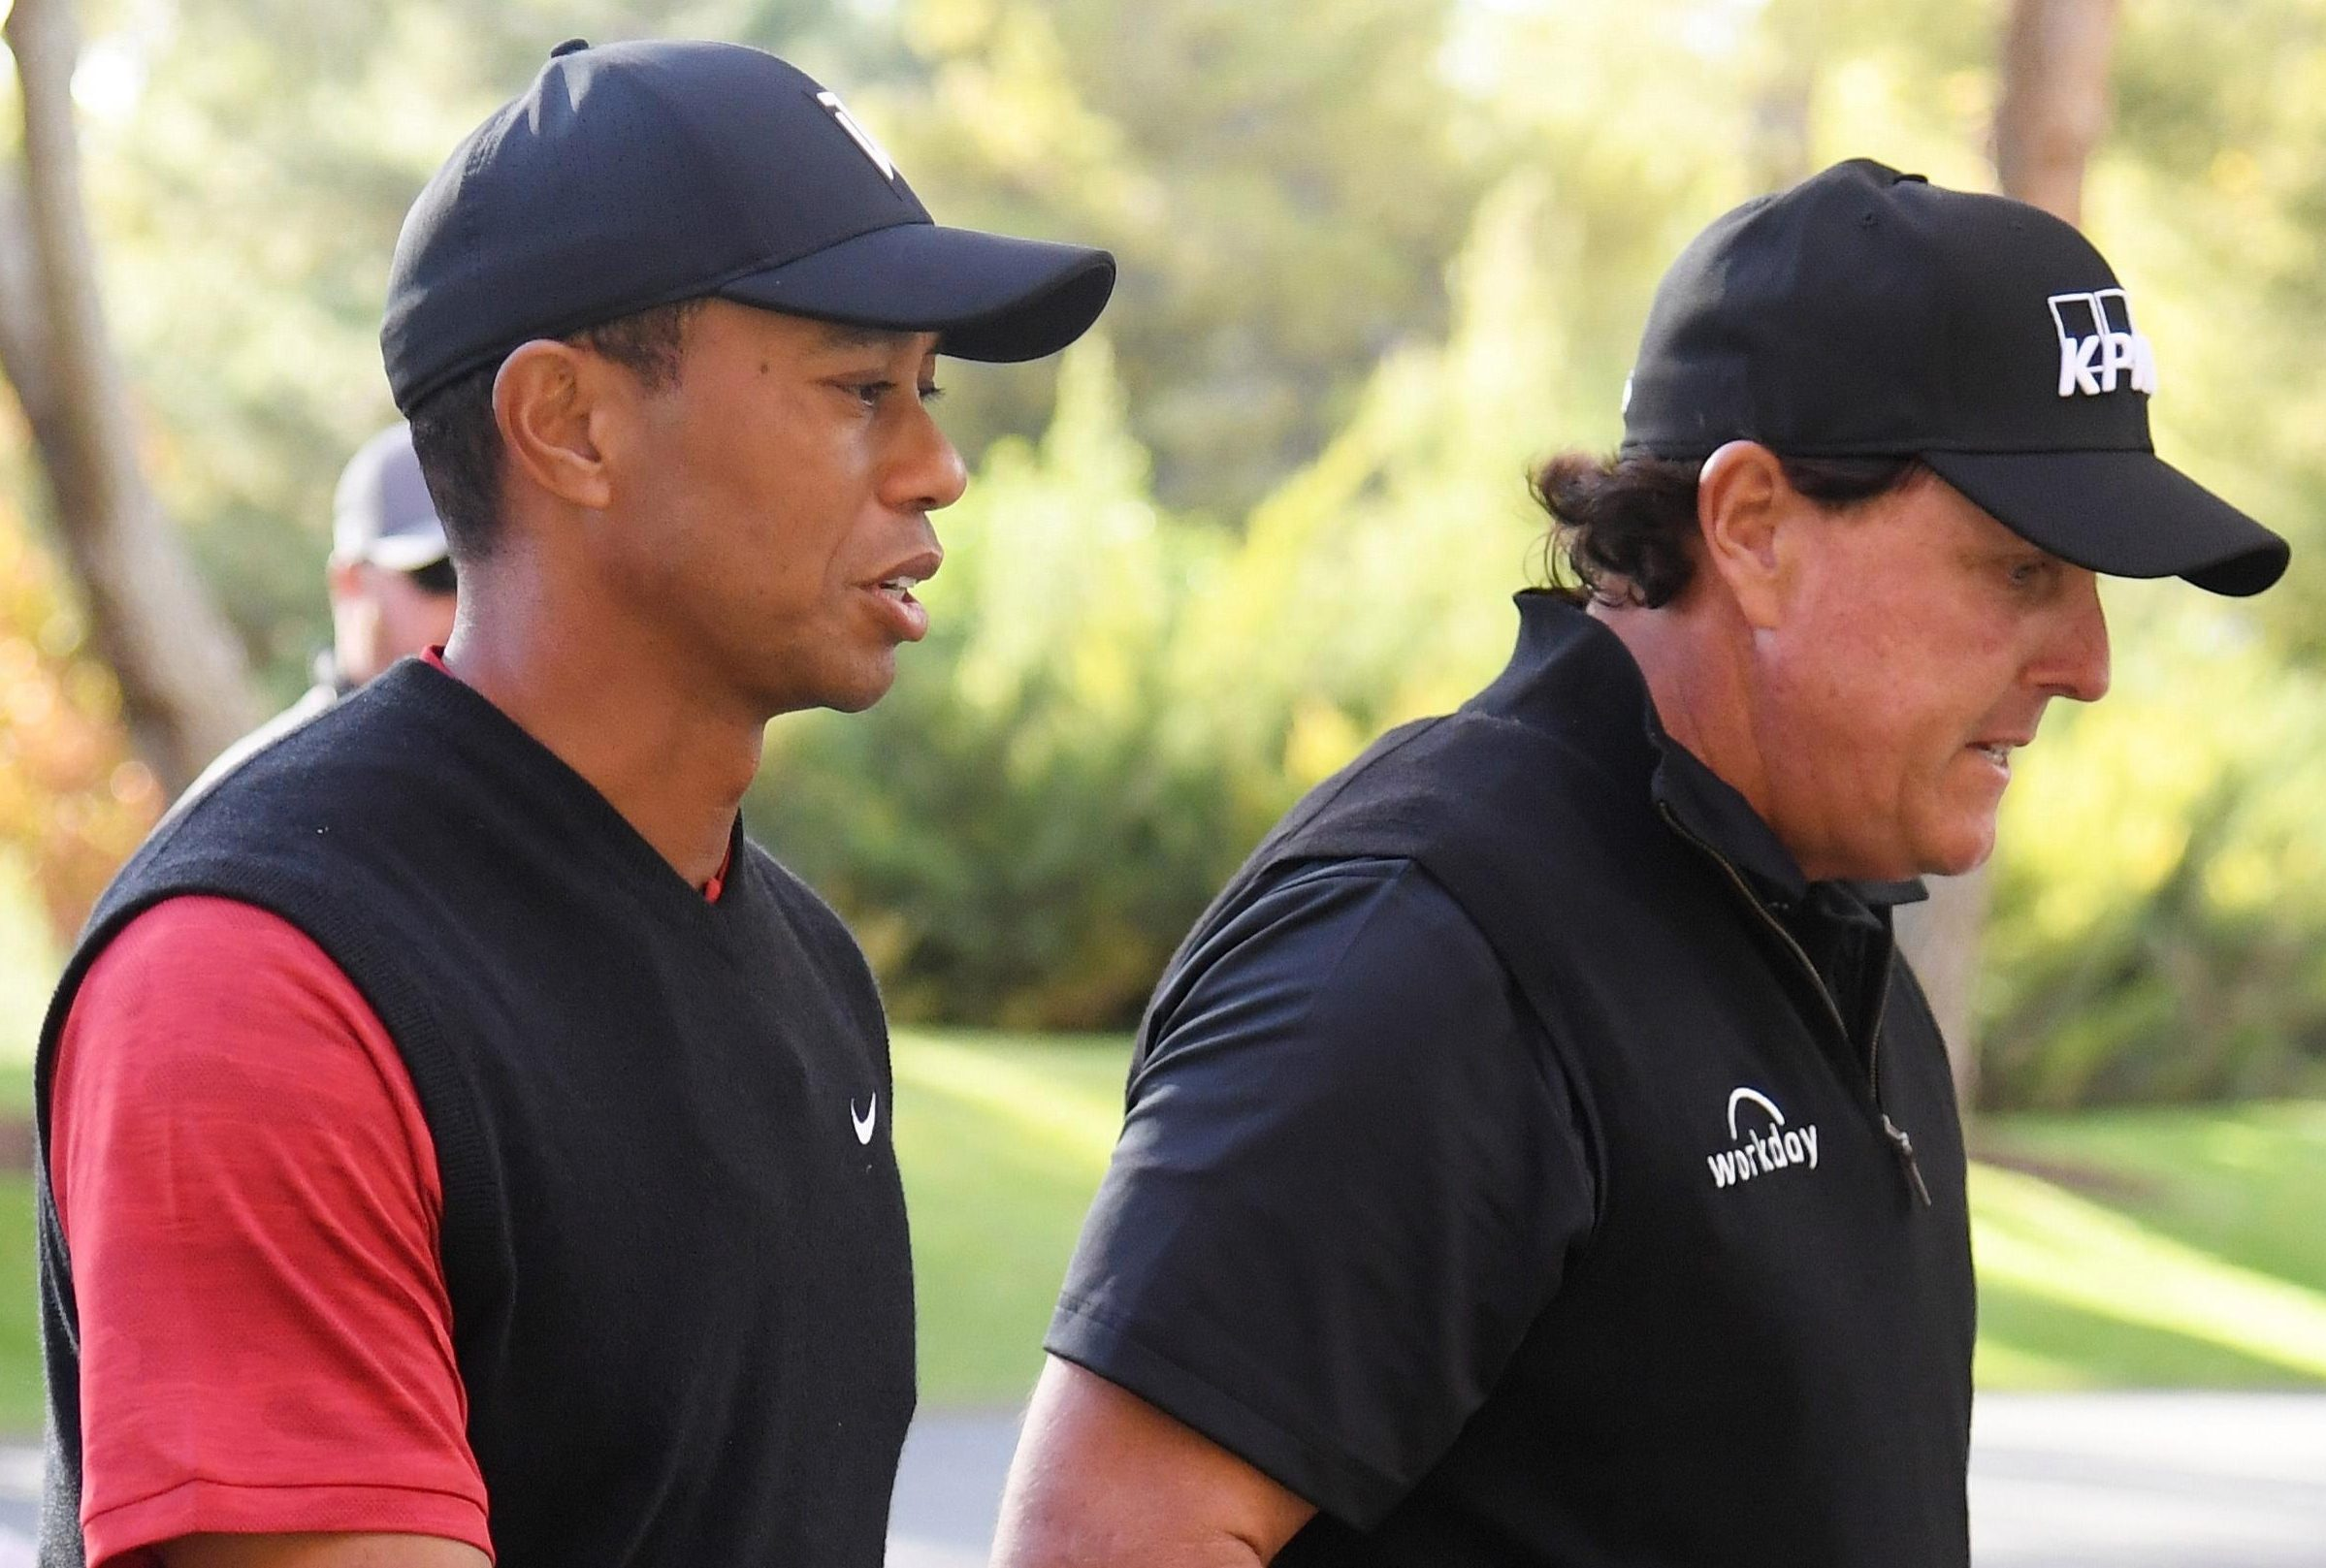 Ryder Cup losers Tiger Woods and Phil Mickelson may get a chance of some sort of revenge by taking on top Euro duo Francesco Molinari and Tommy Fleetwood